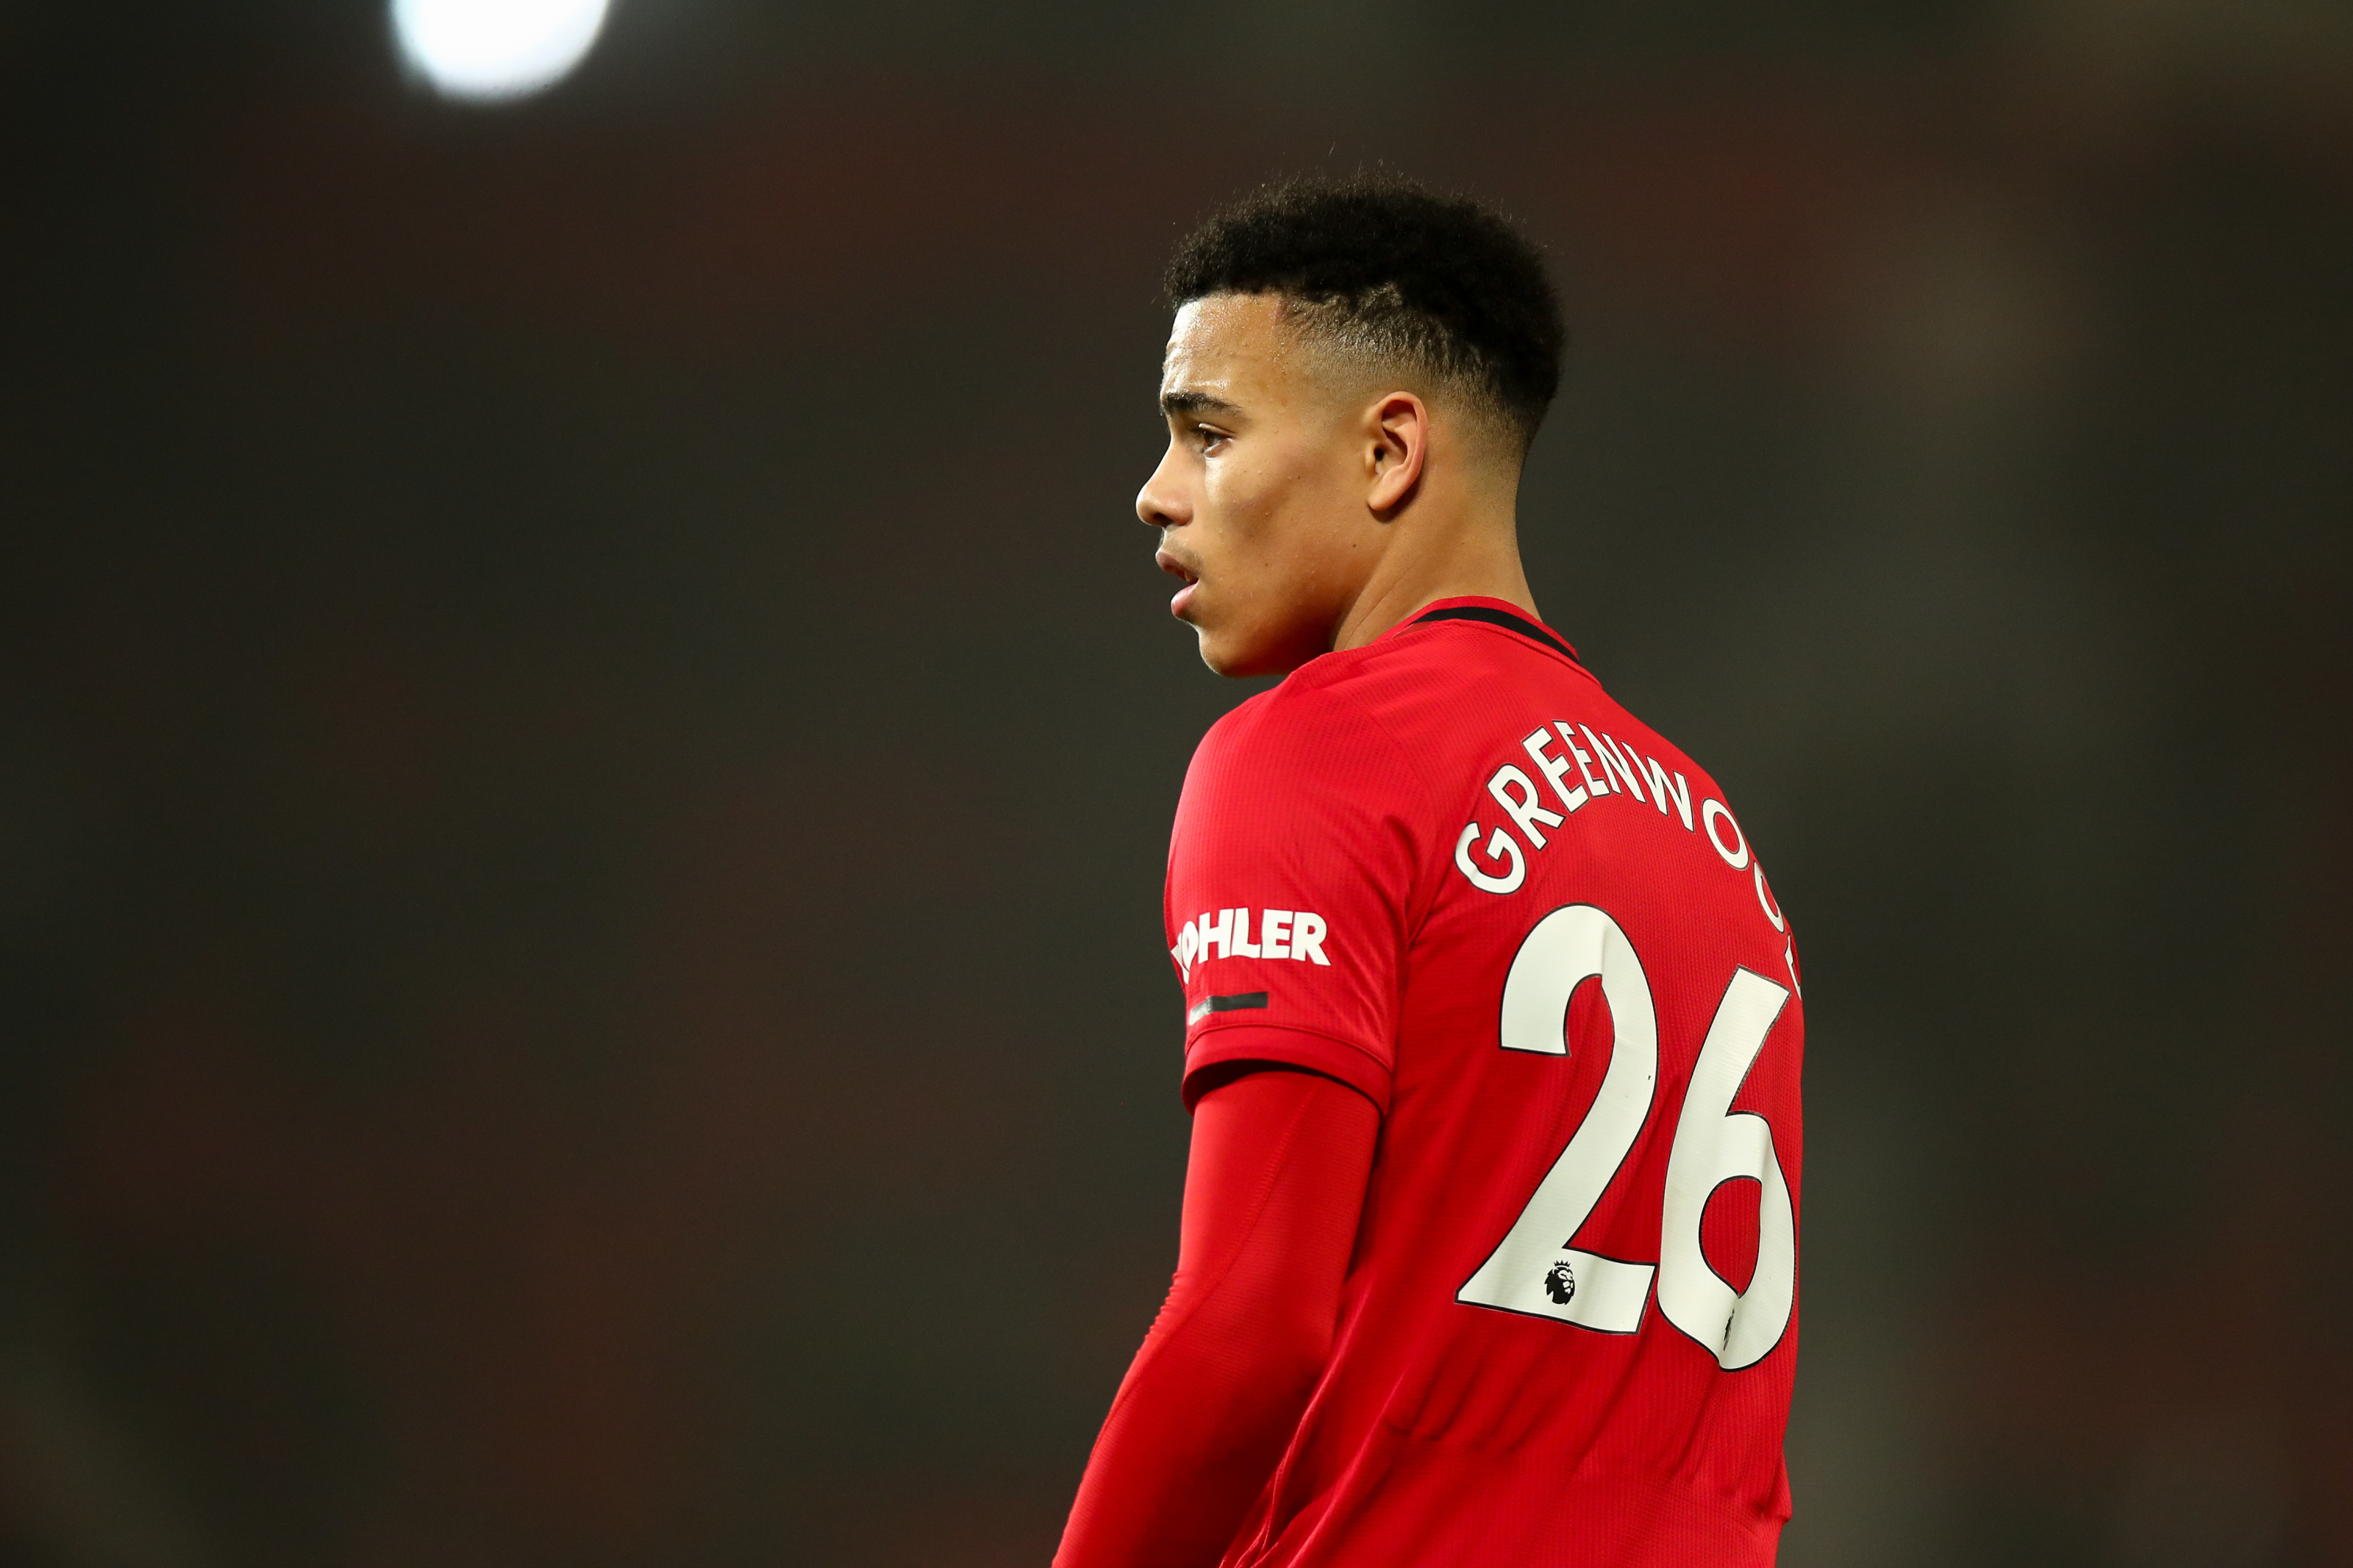 Comparing Manchester United's Mason Greenwood and Arsenal's Gabriel Martinelli